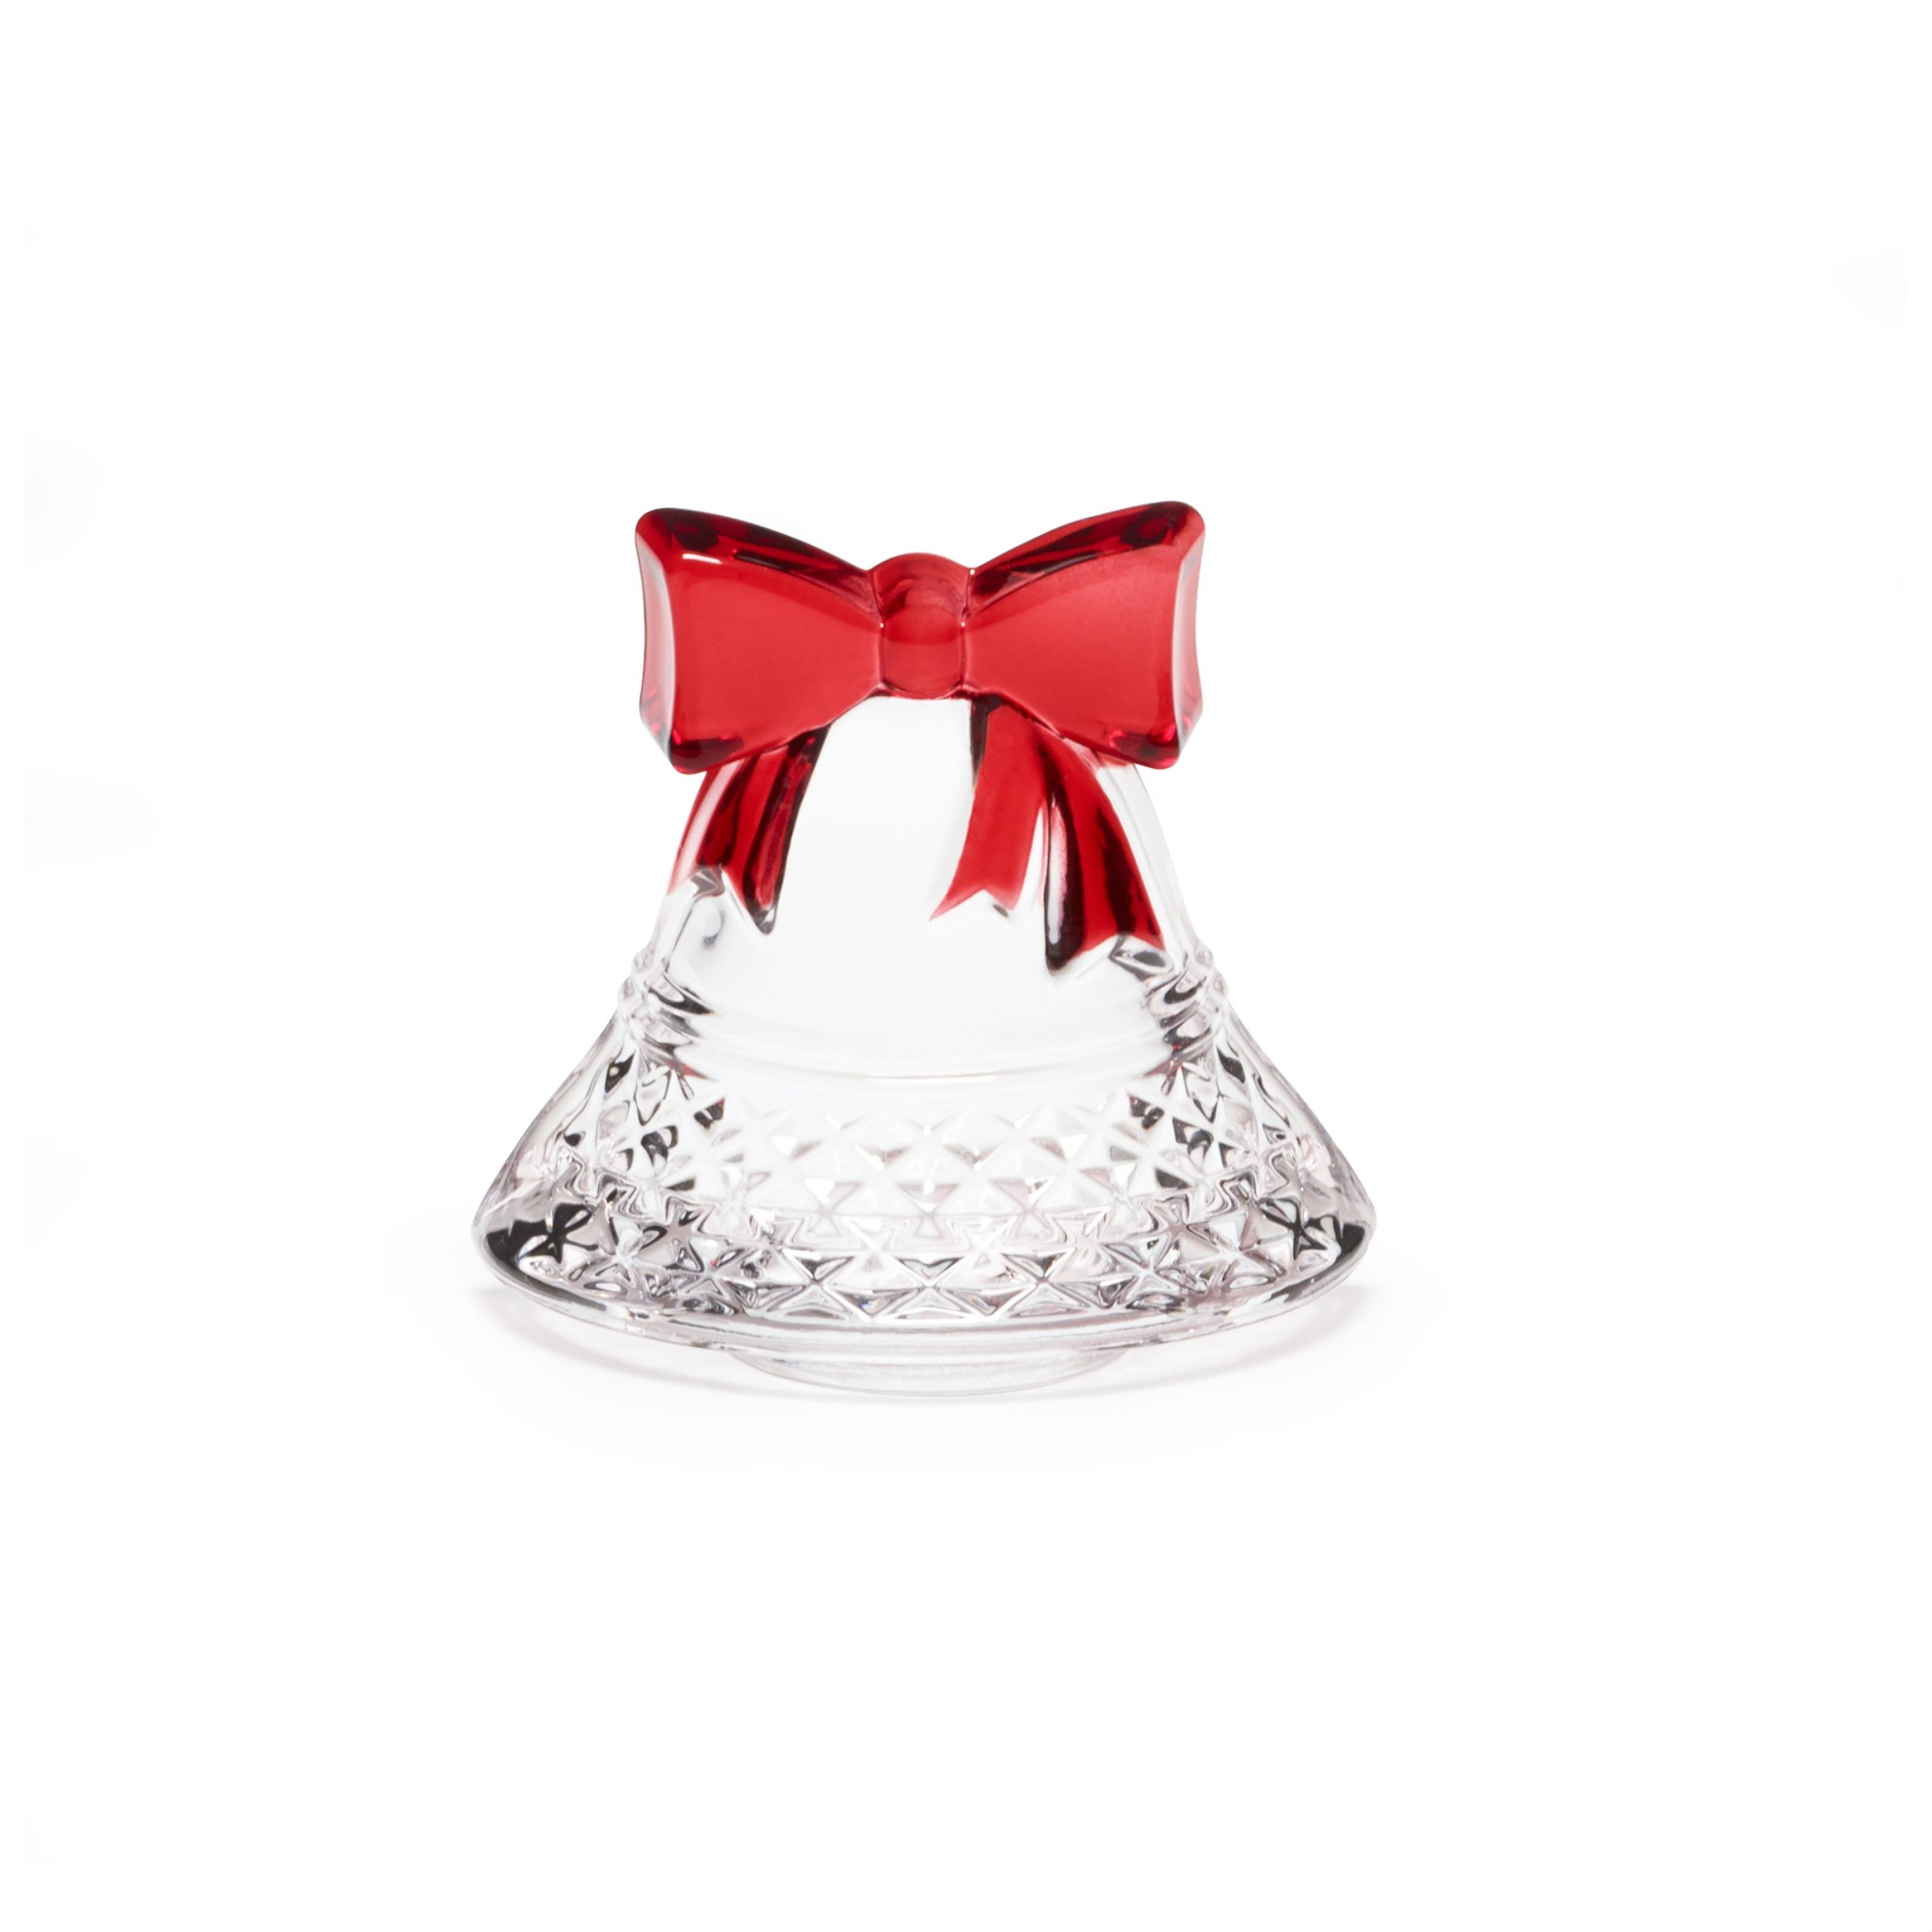 Mikasa Celebrations by Rejoice Crystal Bell Tealight Holder, 4-Inch